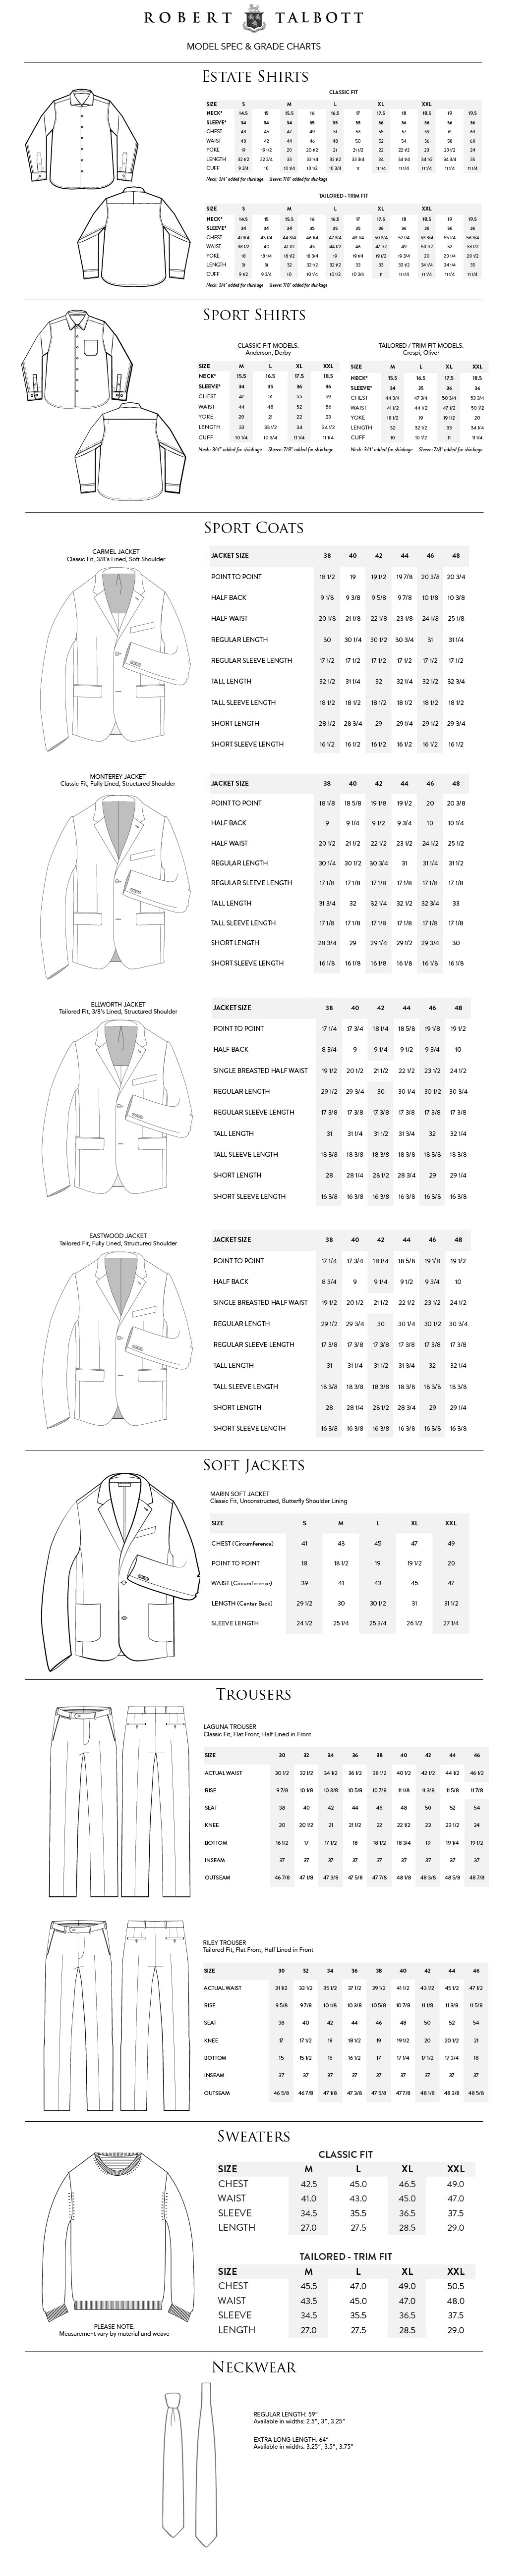 Robert Talbot Sizing Information